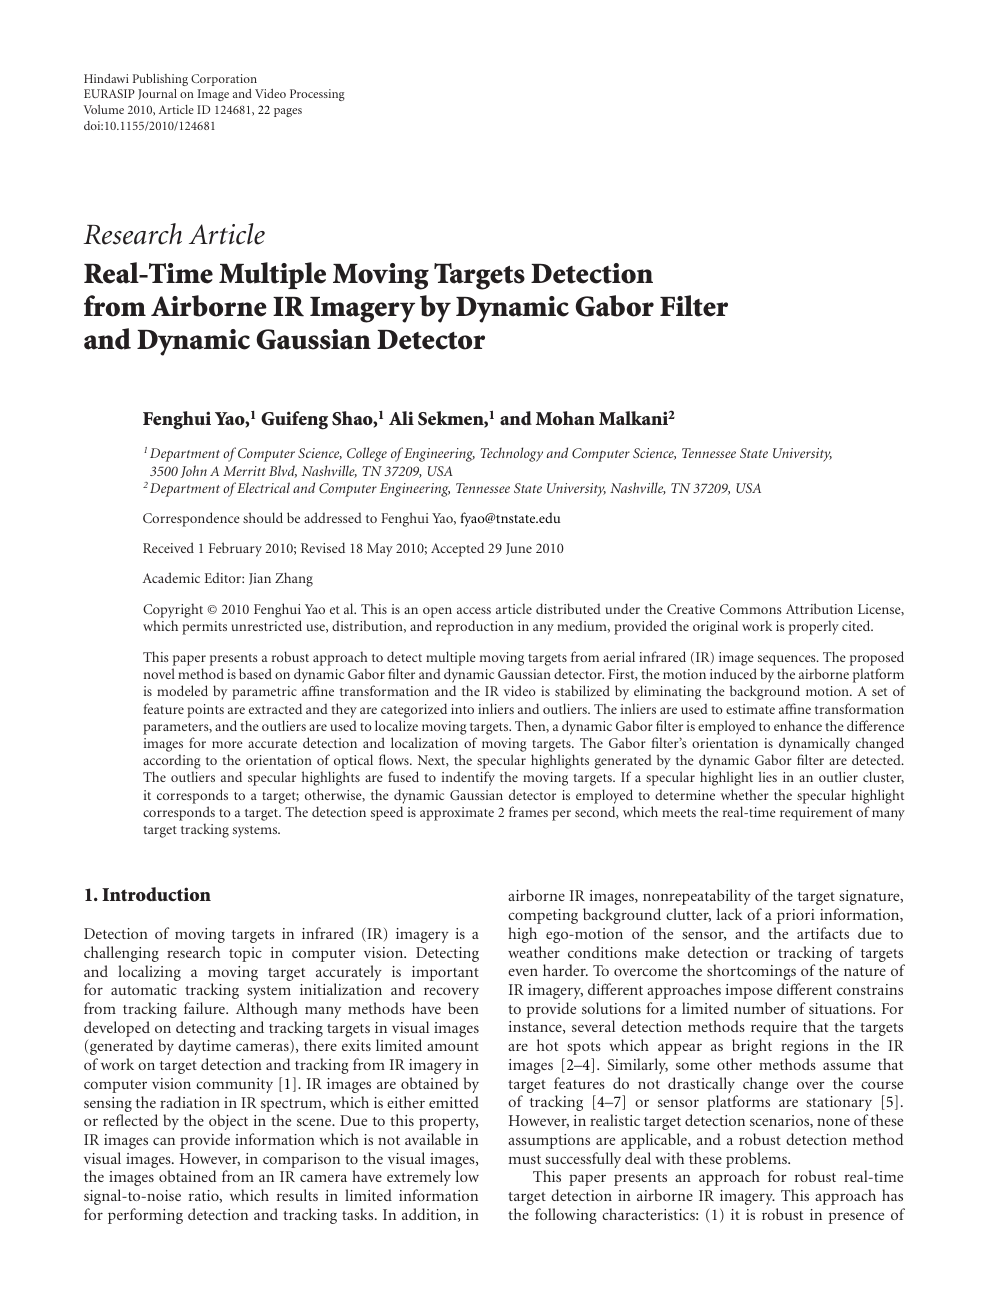 Real-Time Multiple Moving Targets Detection from Airborne IR